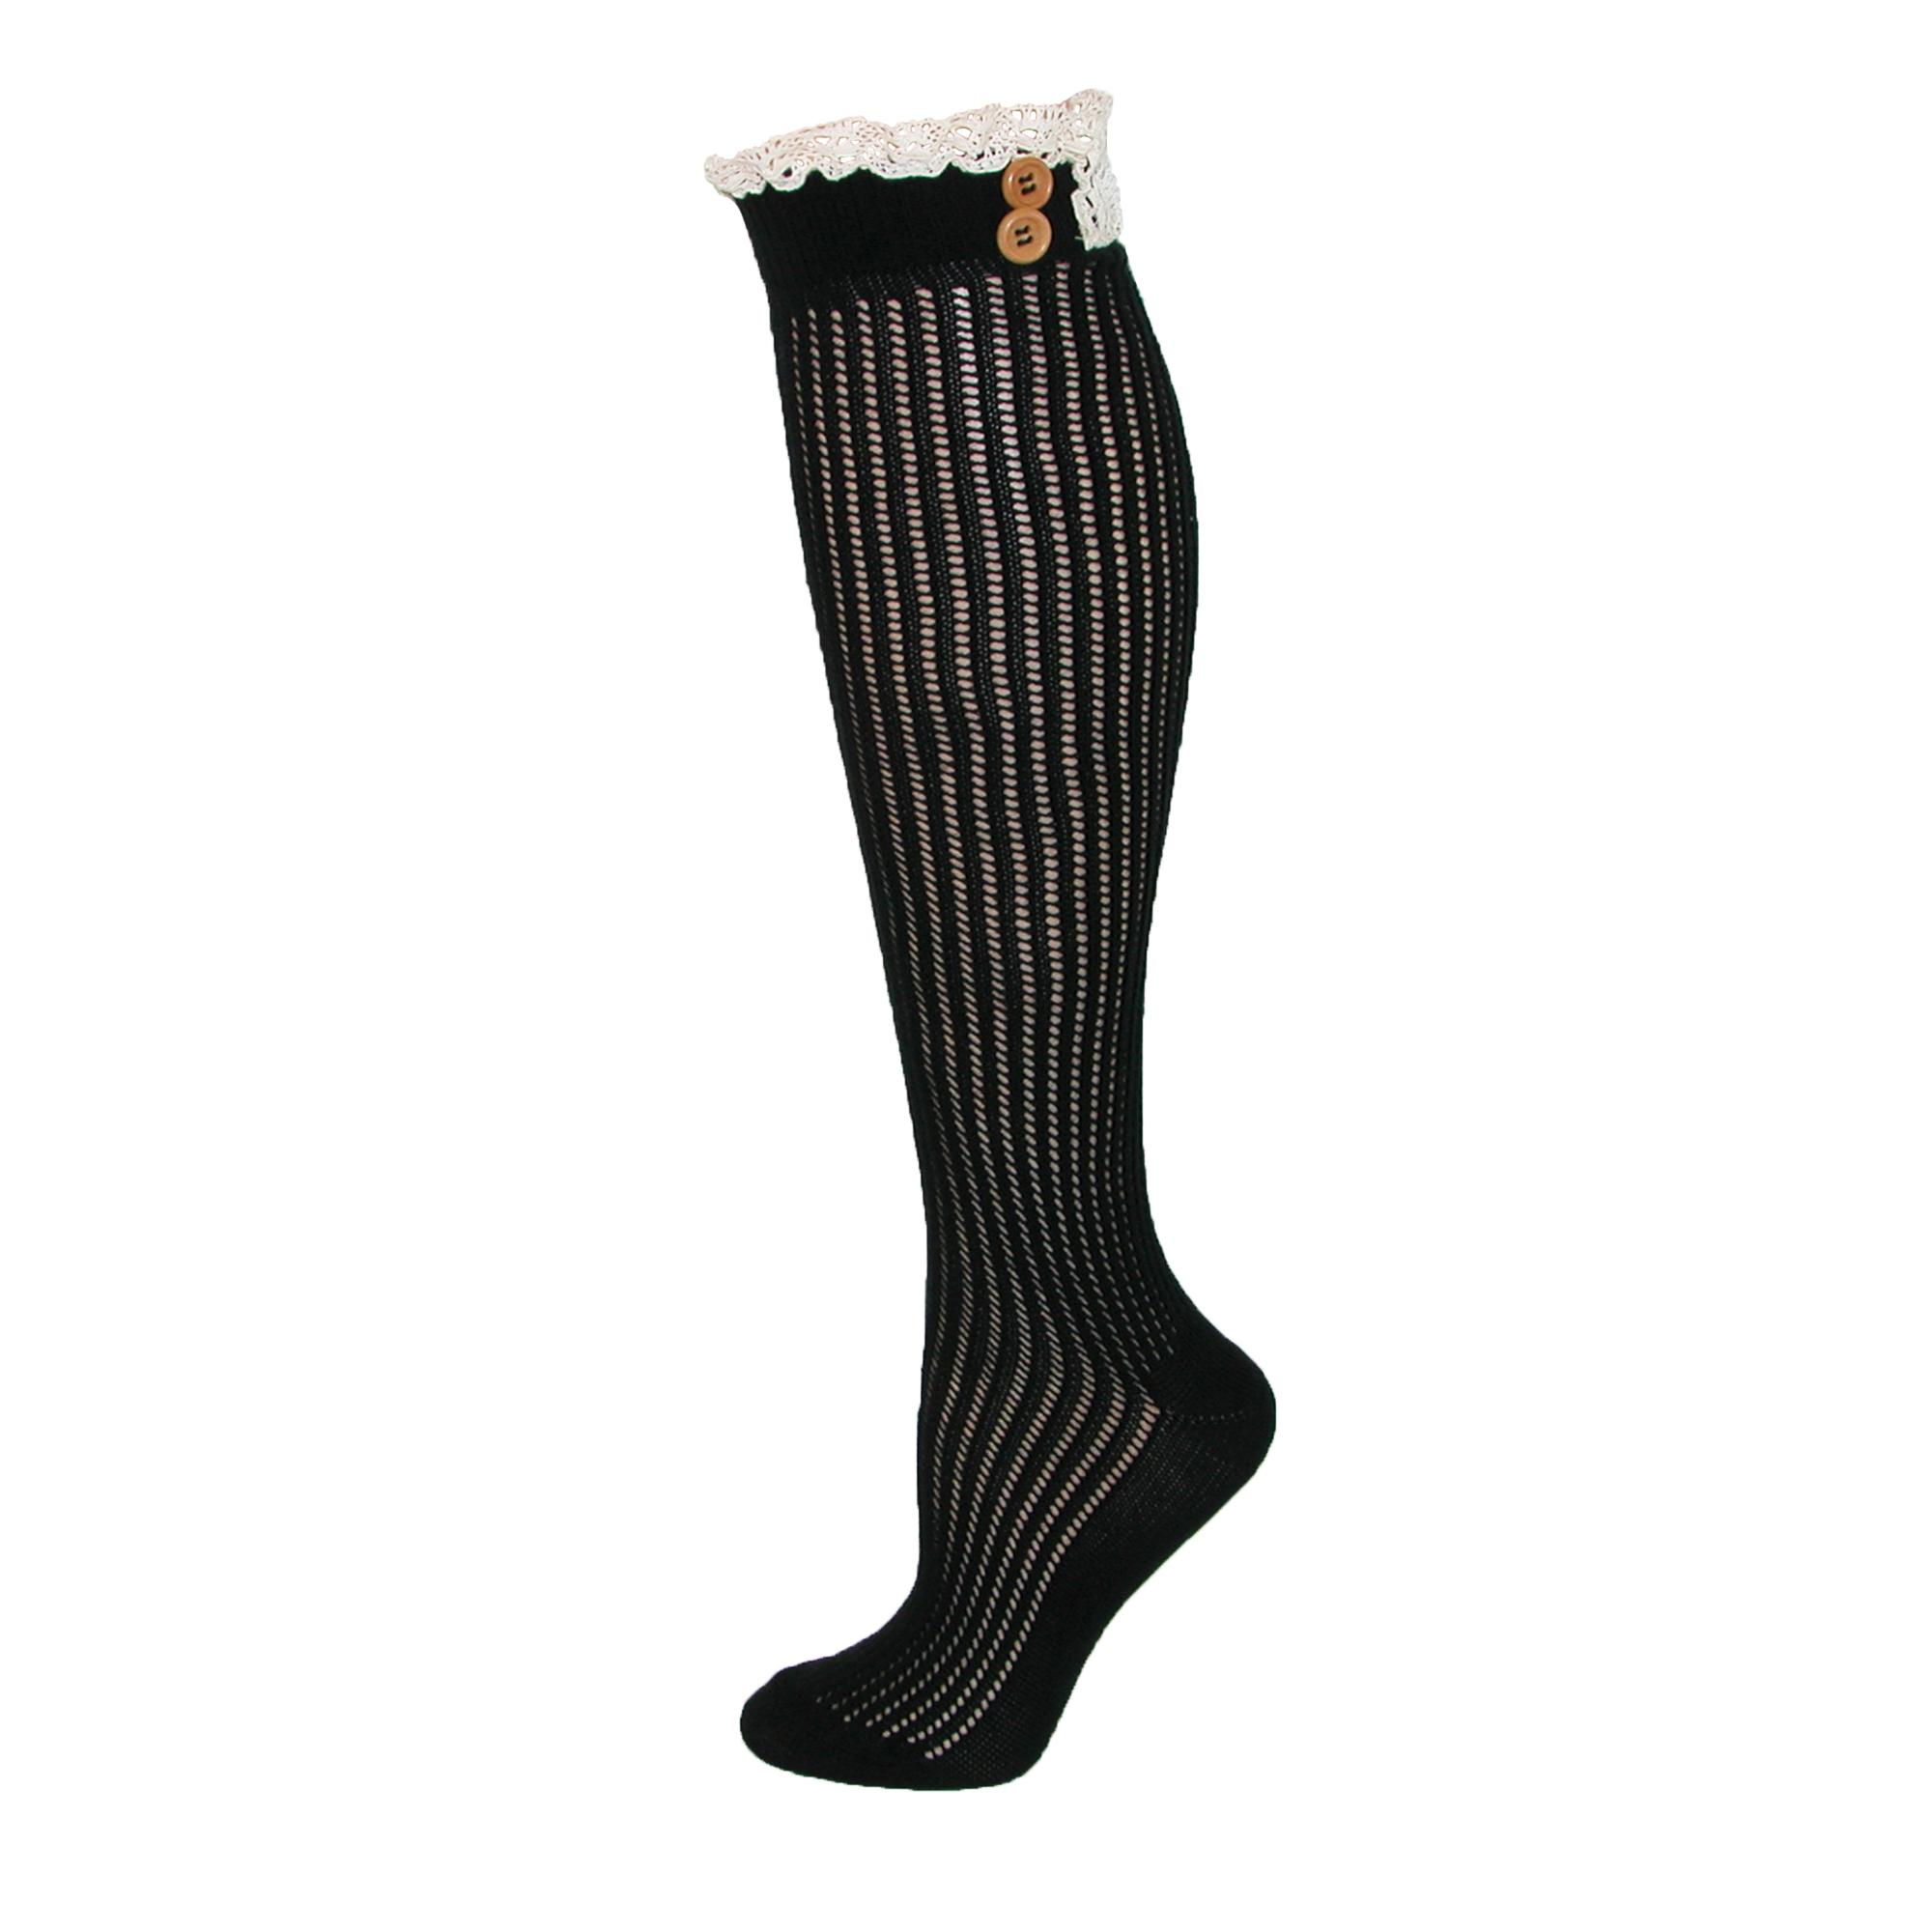 Jefferies Socks Womens Lace Top Boot Knee Highs